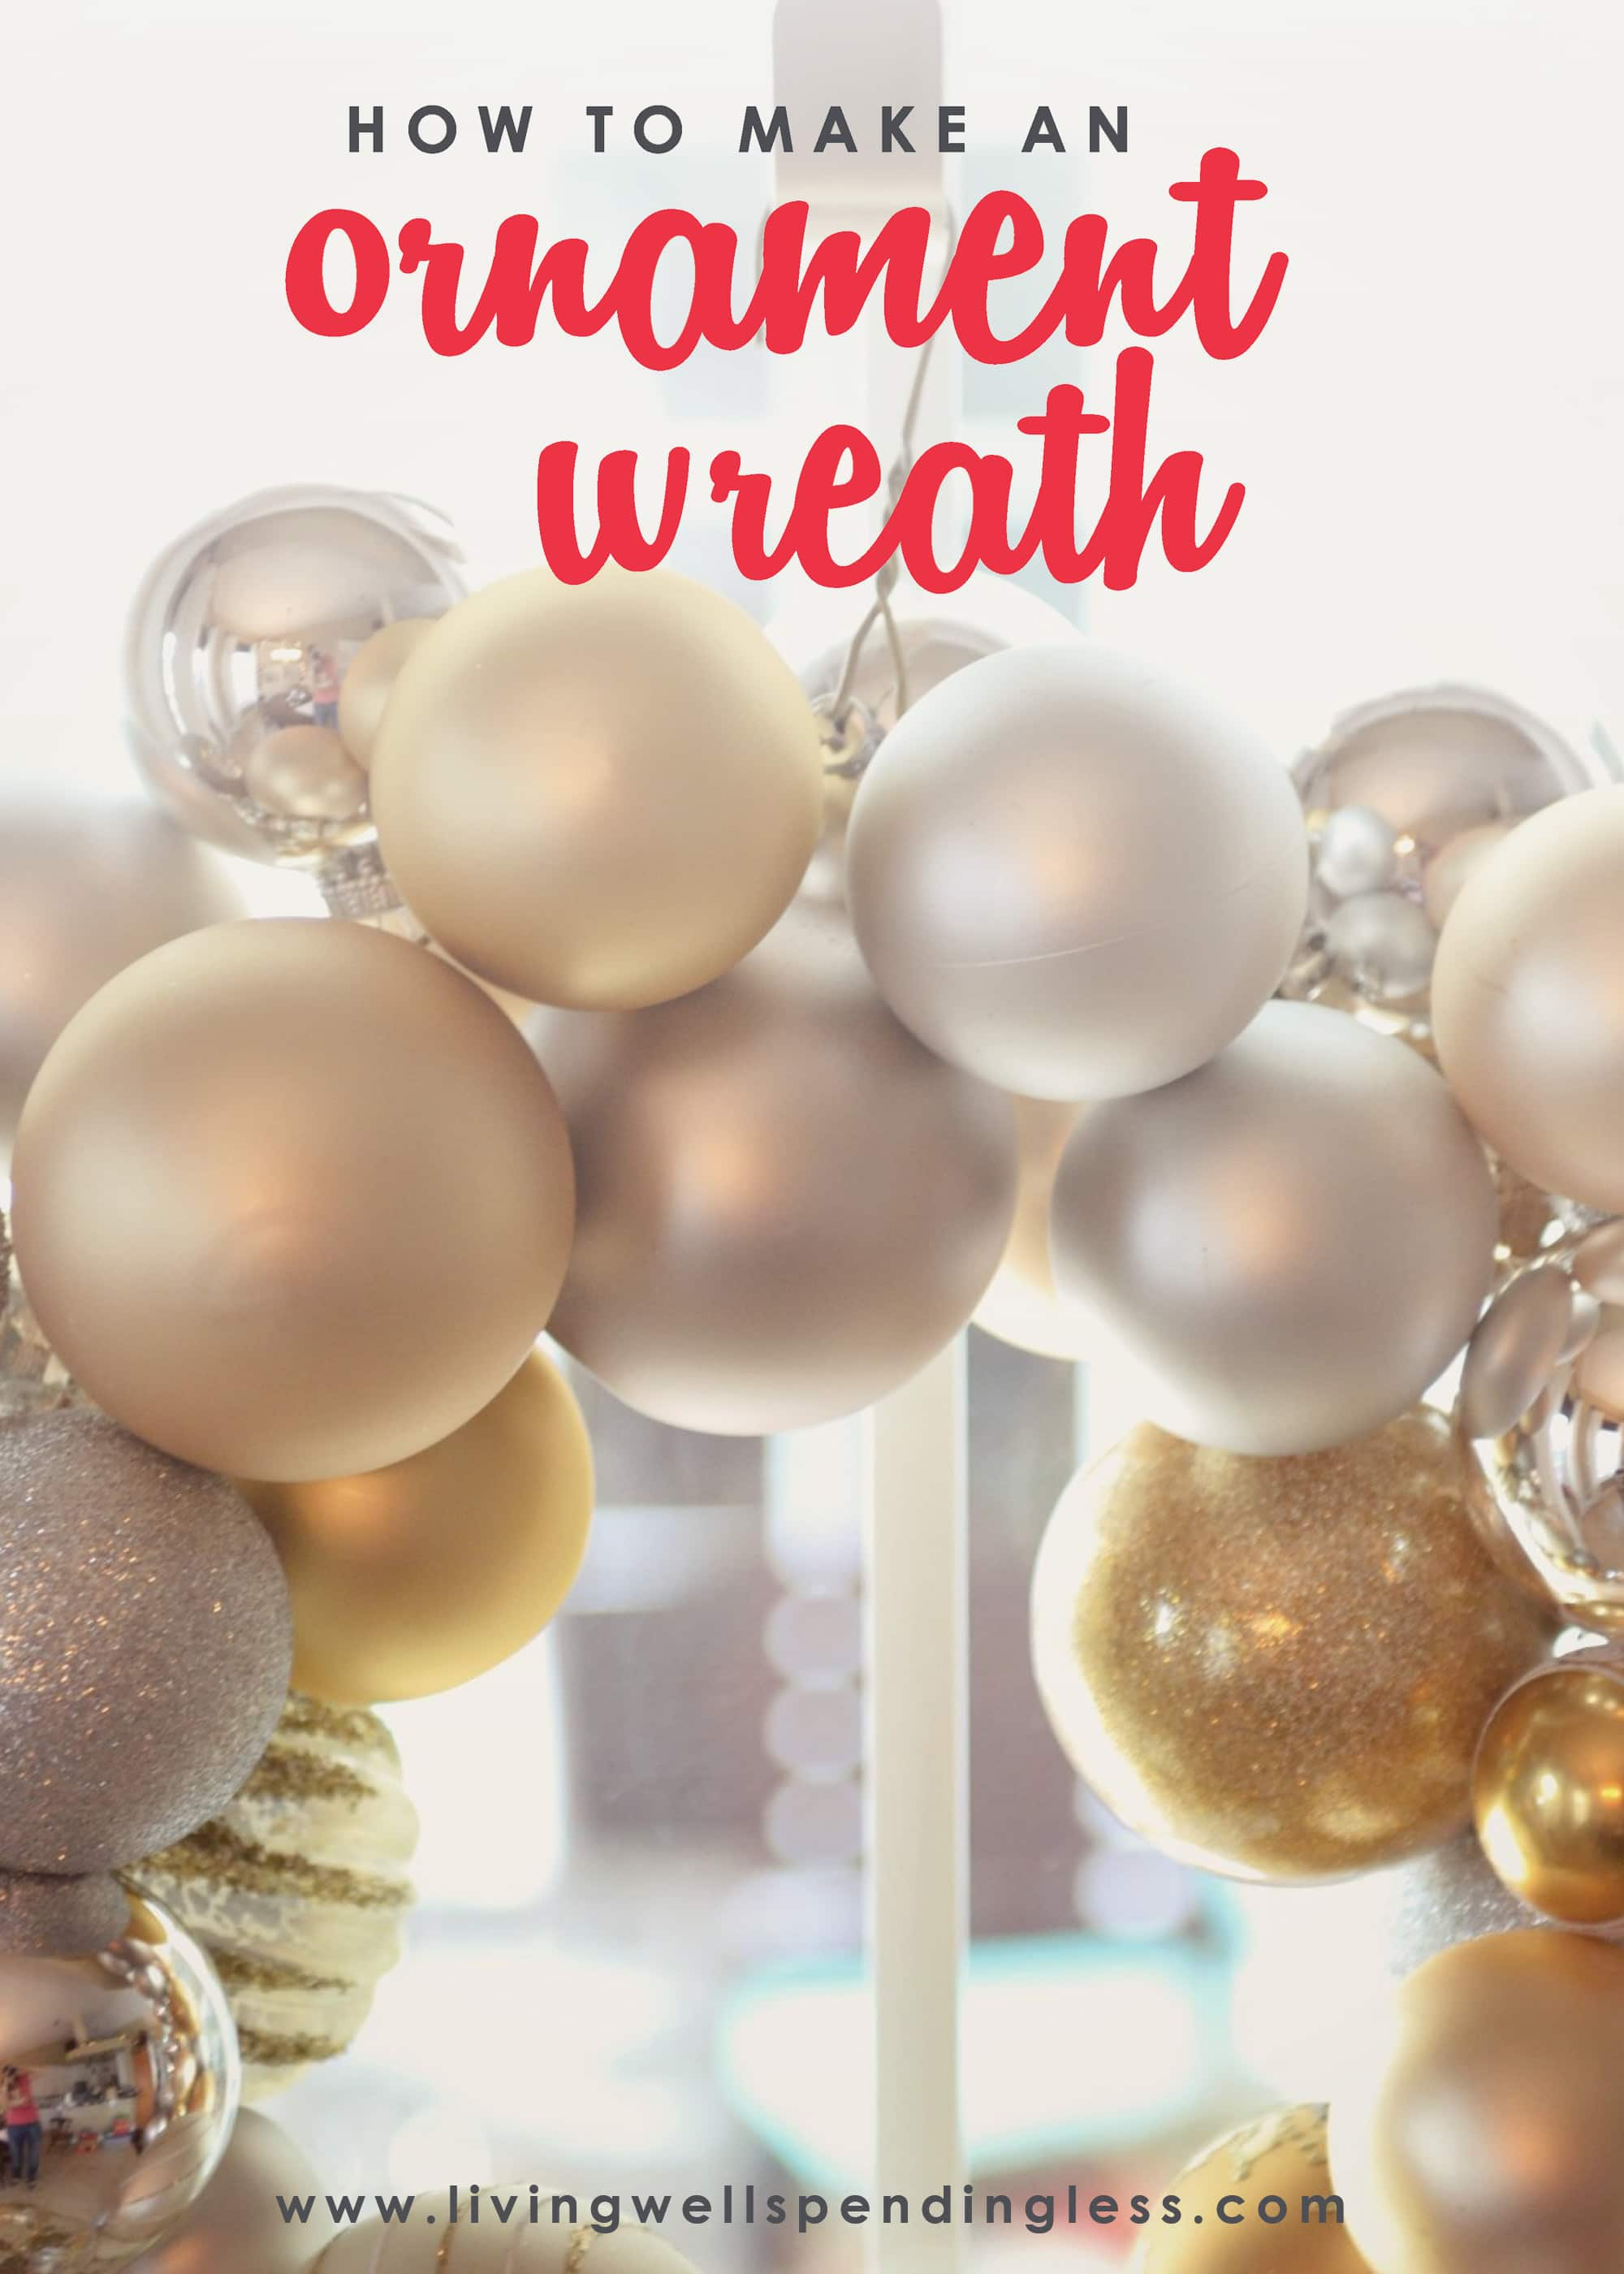 Looking for a fun decor project this Christmas? This DIY ornament wreath is festive and easy to make with wire hangers, pliers, ribbon and spare ornaments!